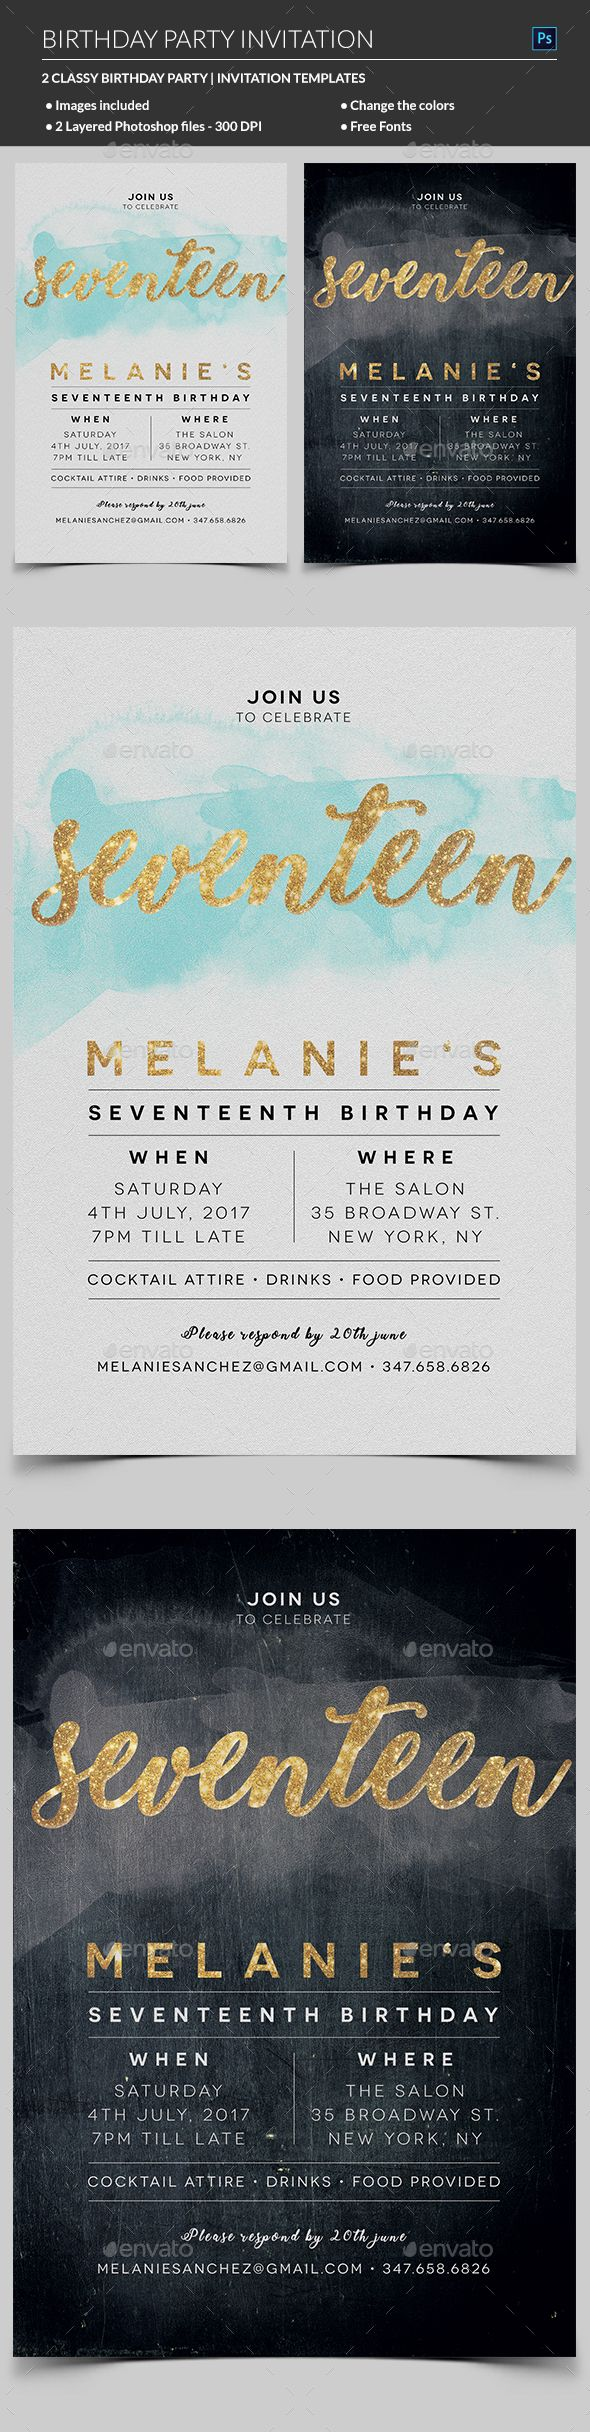 design birthday party invitations free%0A Elegant Birthday Invitation